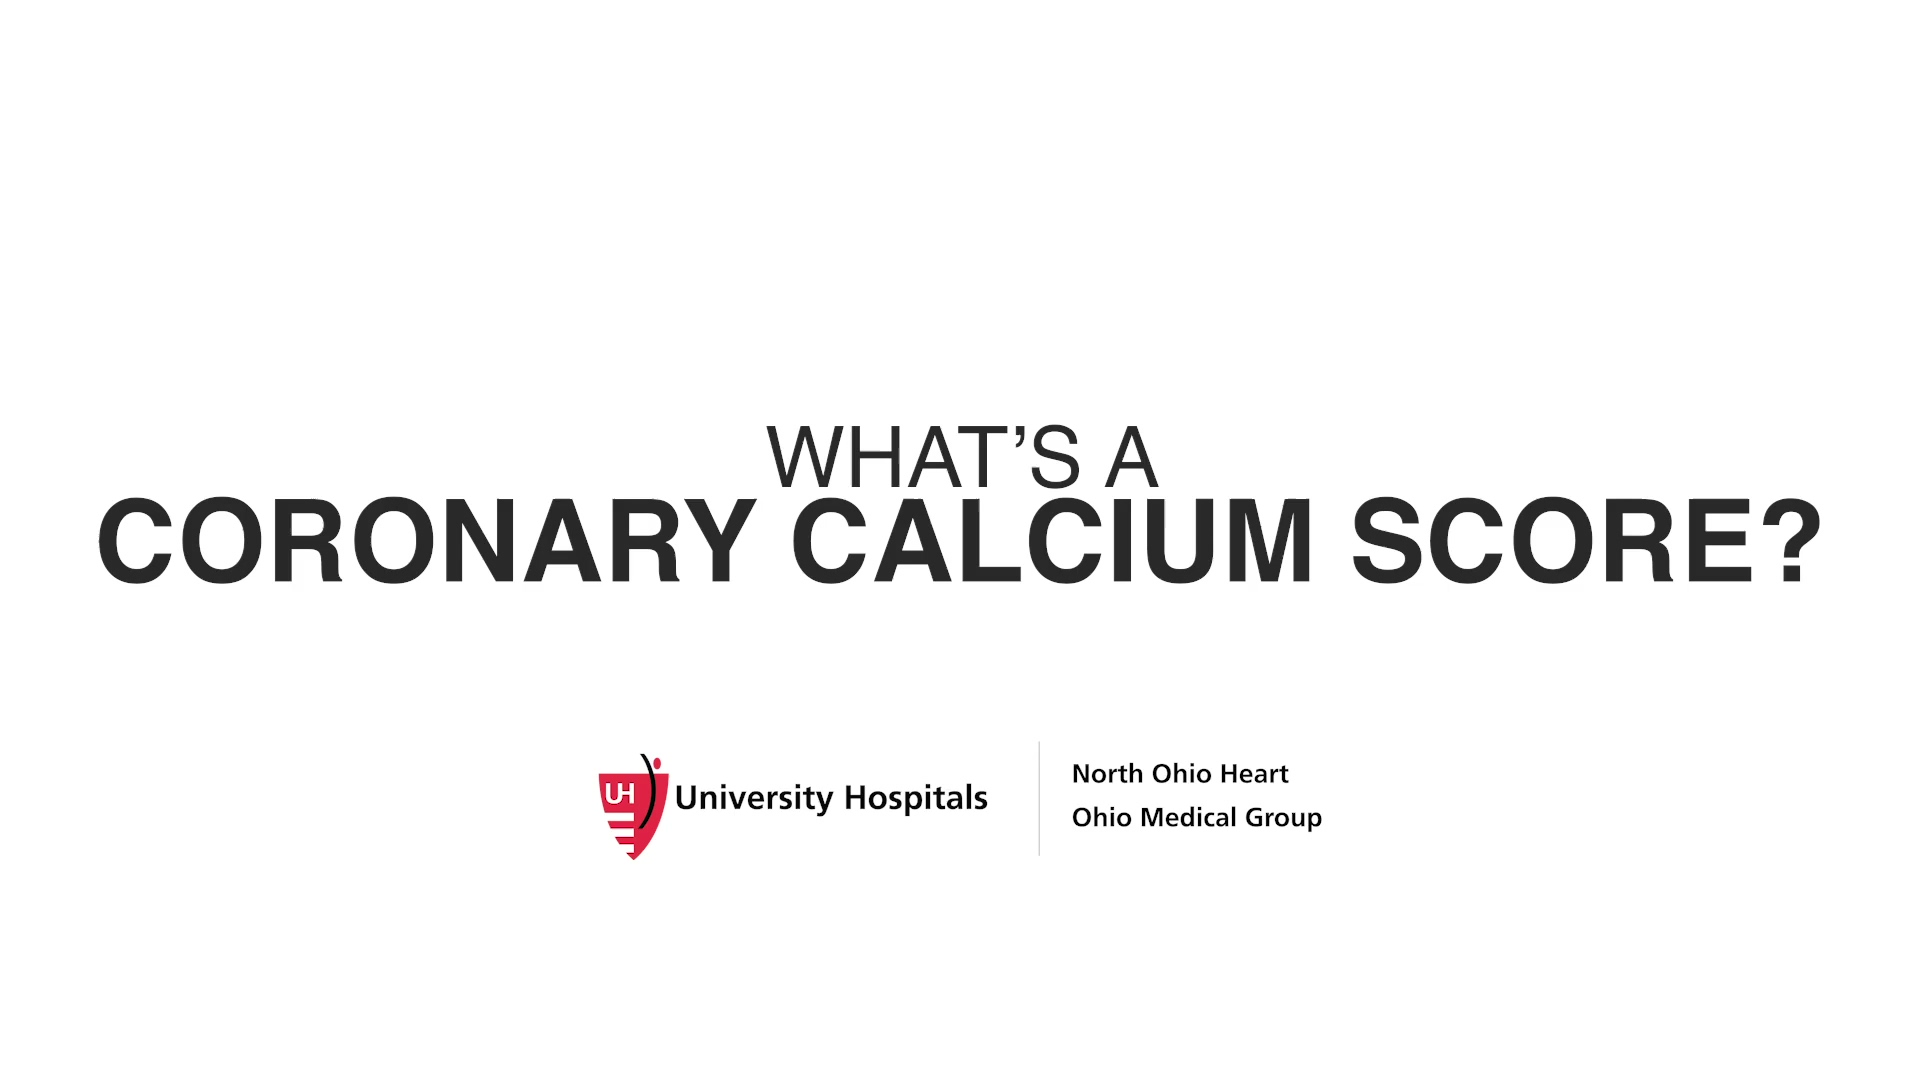 NOH-Social-Post-1-(Calcium Score)